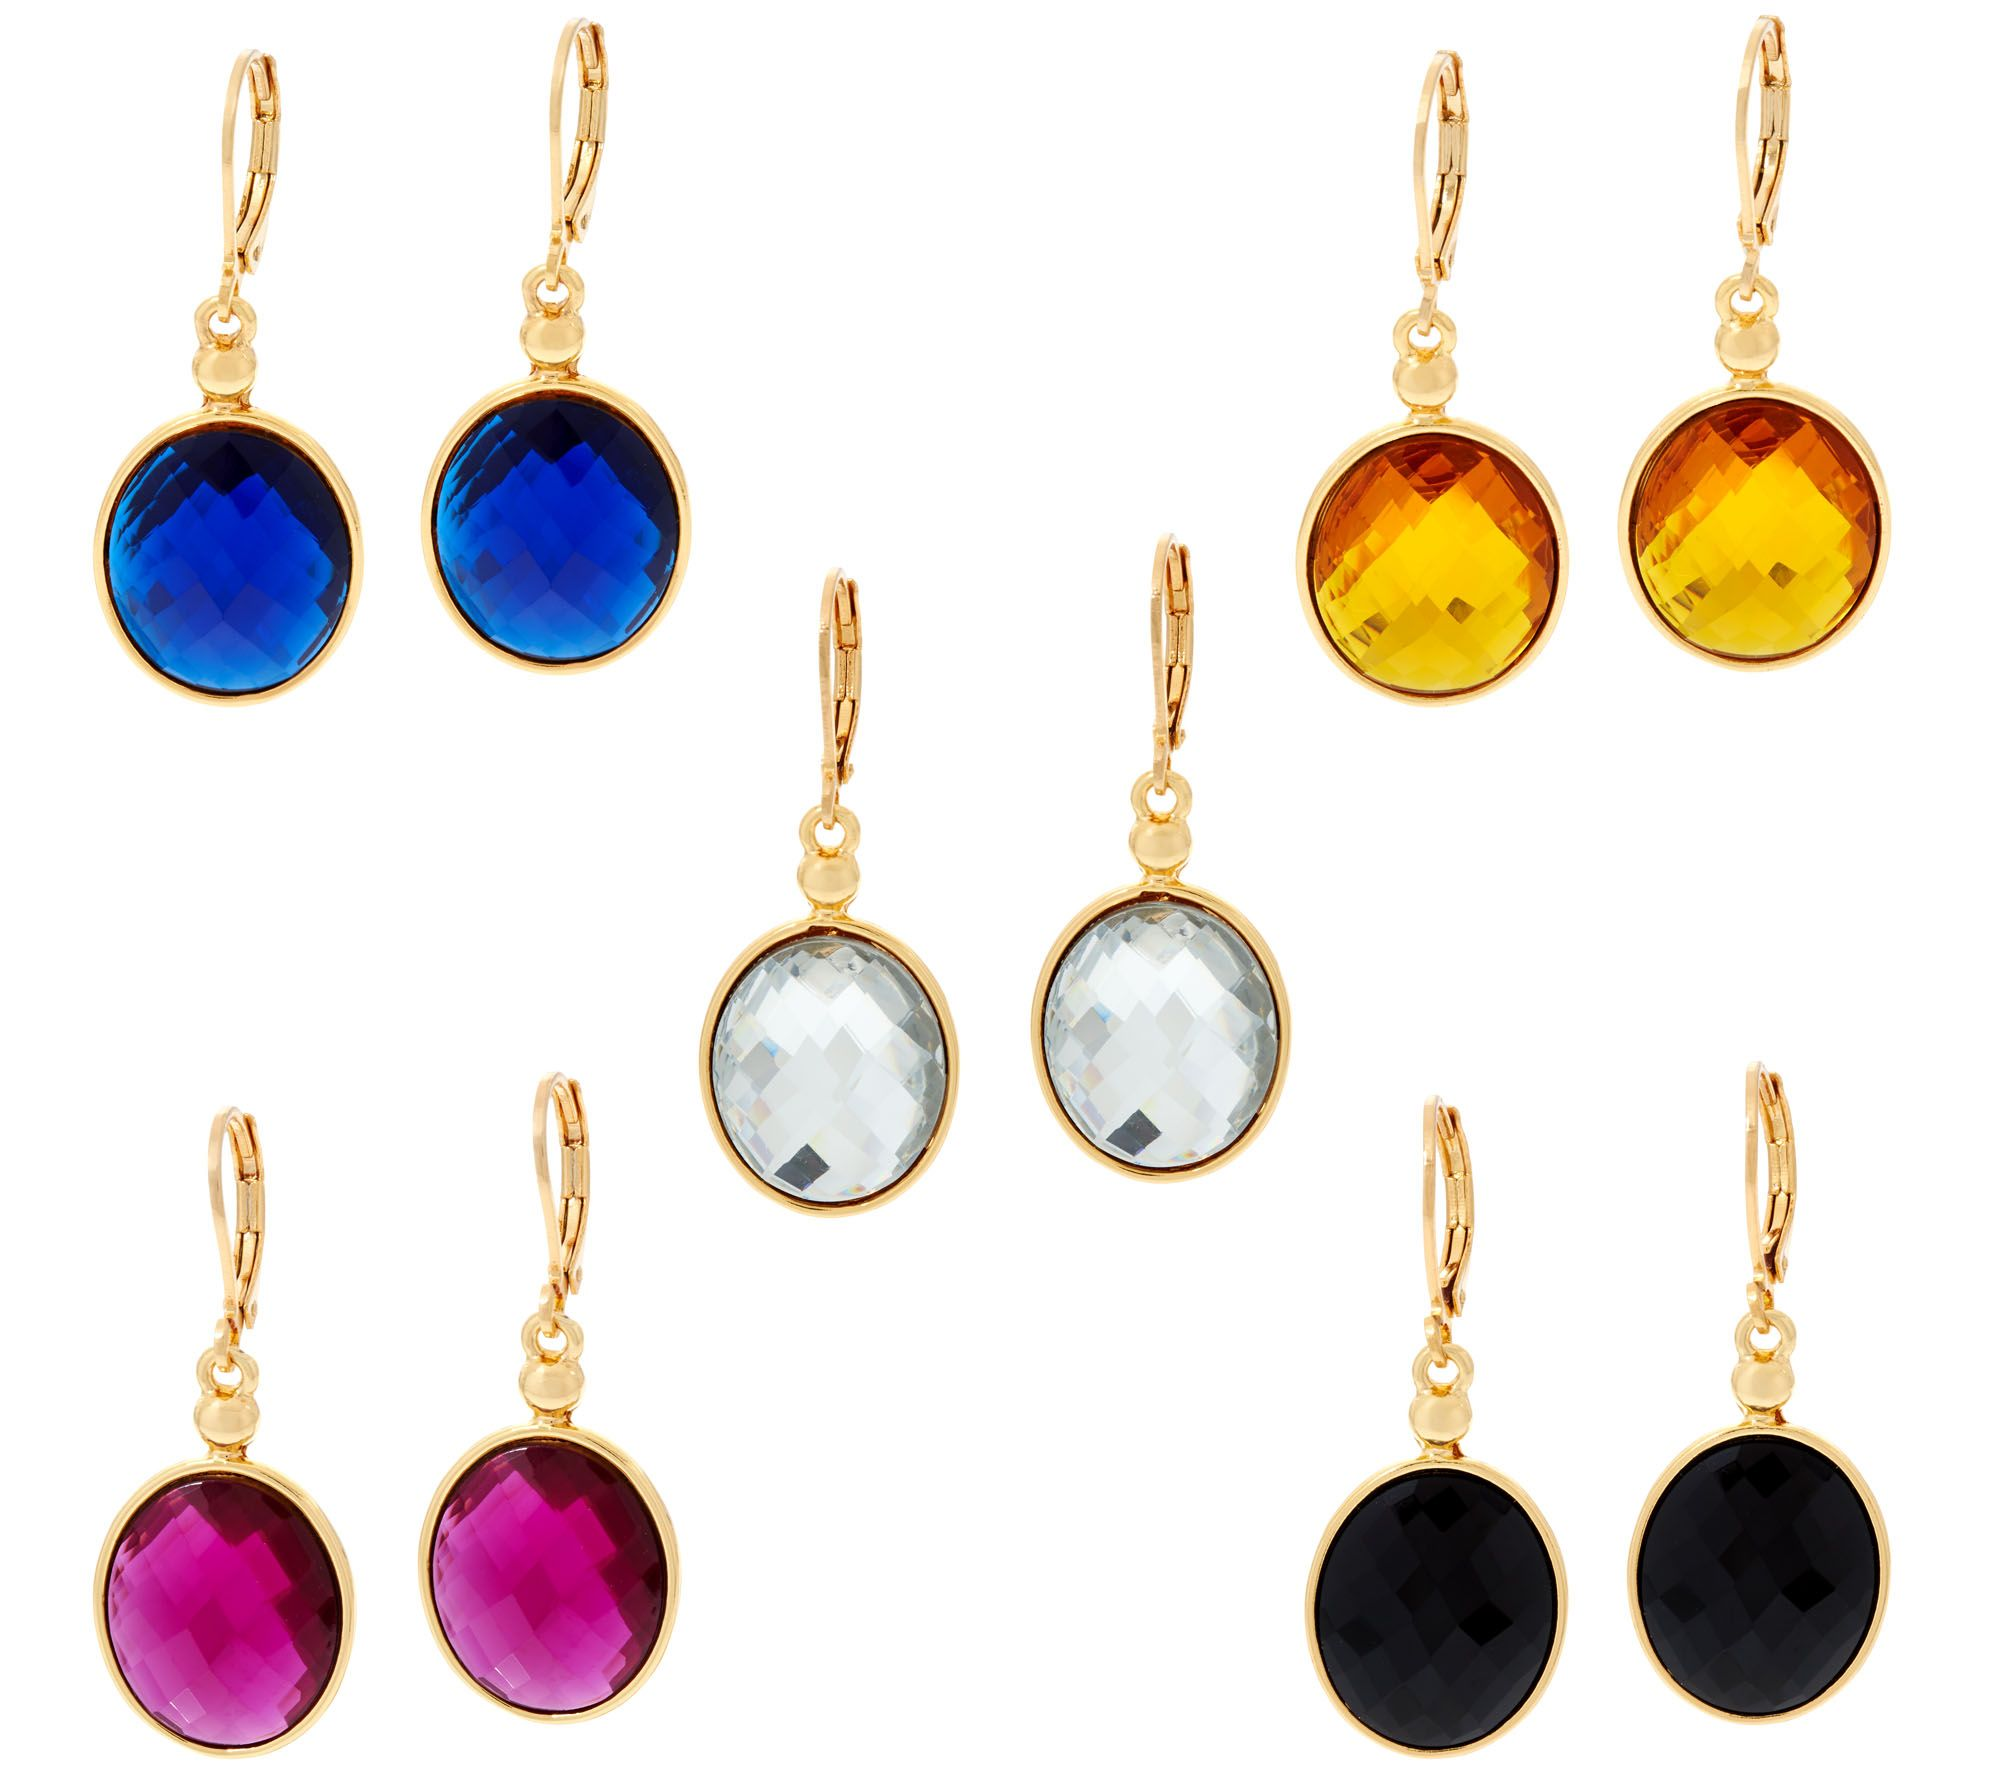 Joan rivers set of 5 faceted oval earrings for Joan rivers jewelry necklaces